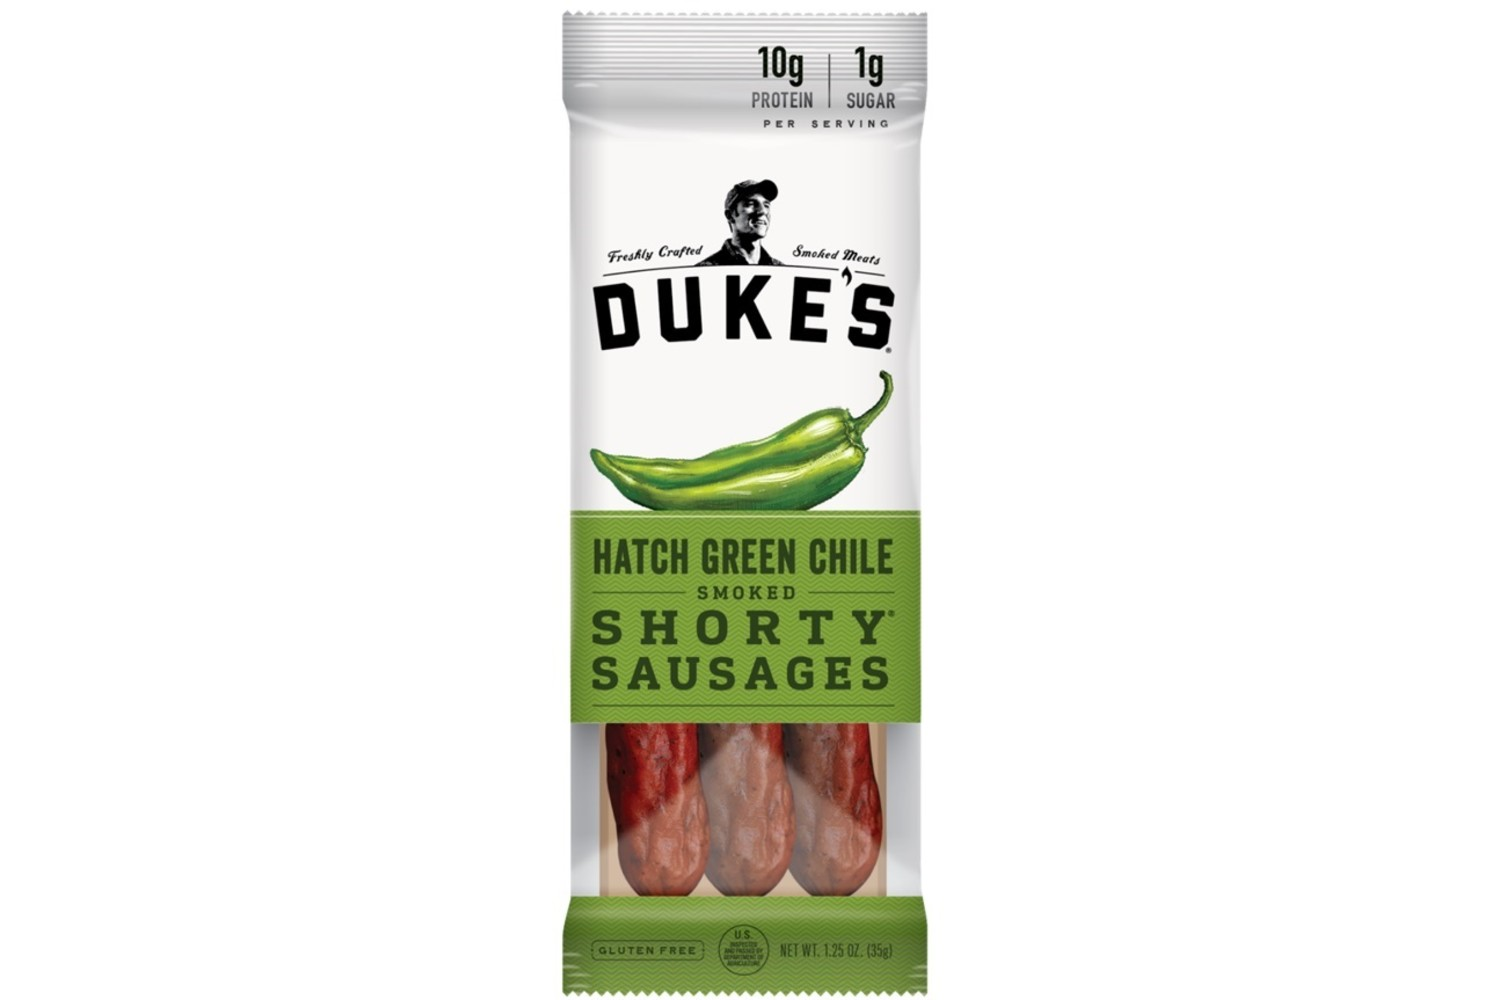 DUKES Hatch Green Chile Pork Sausages